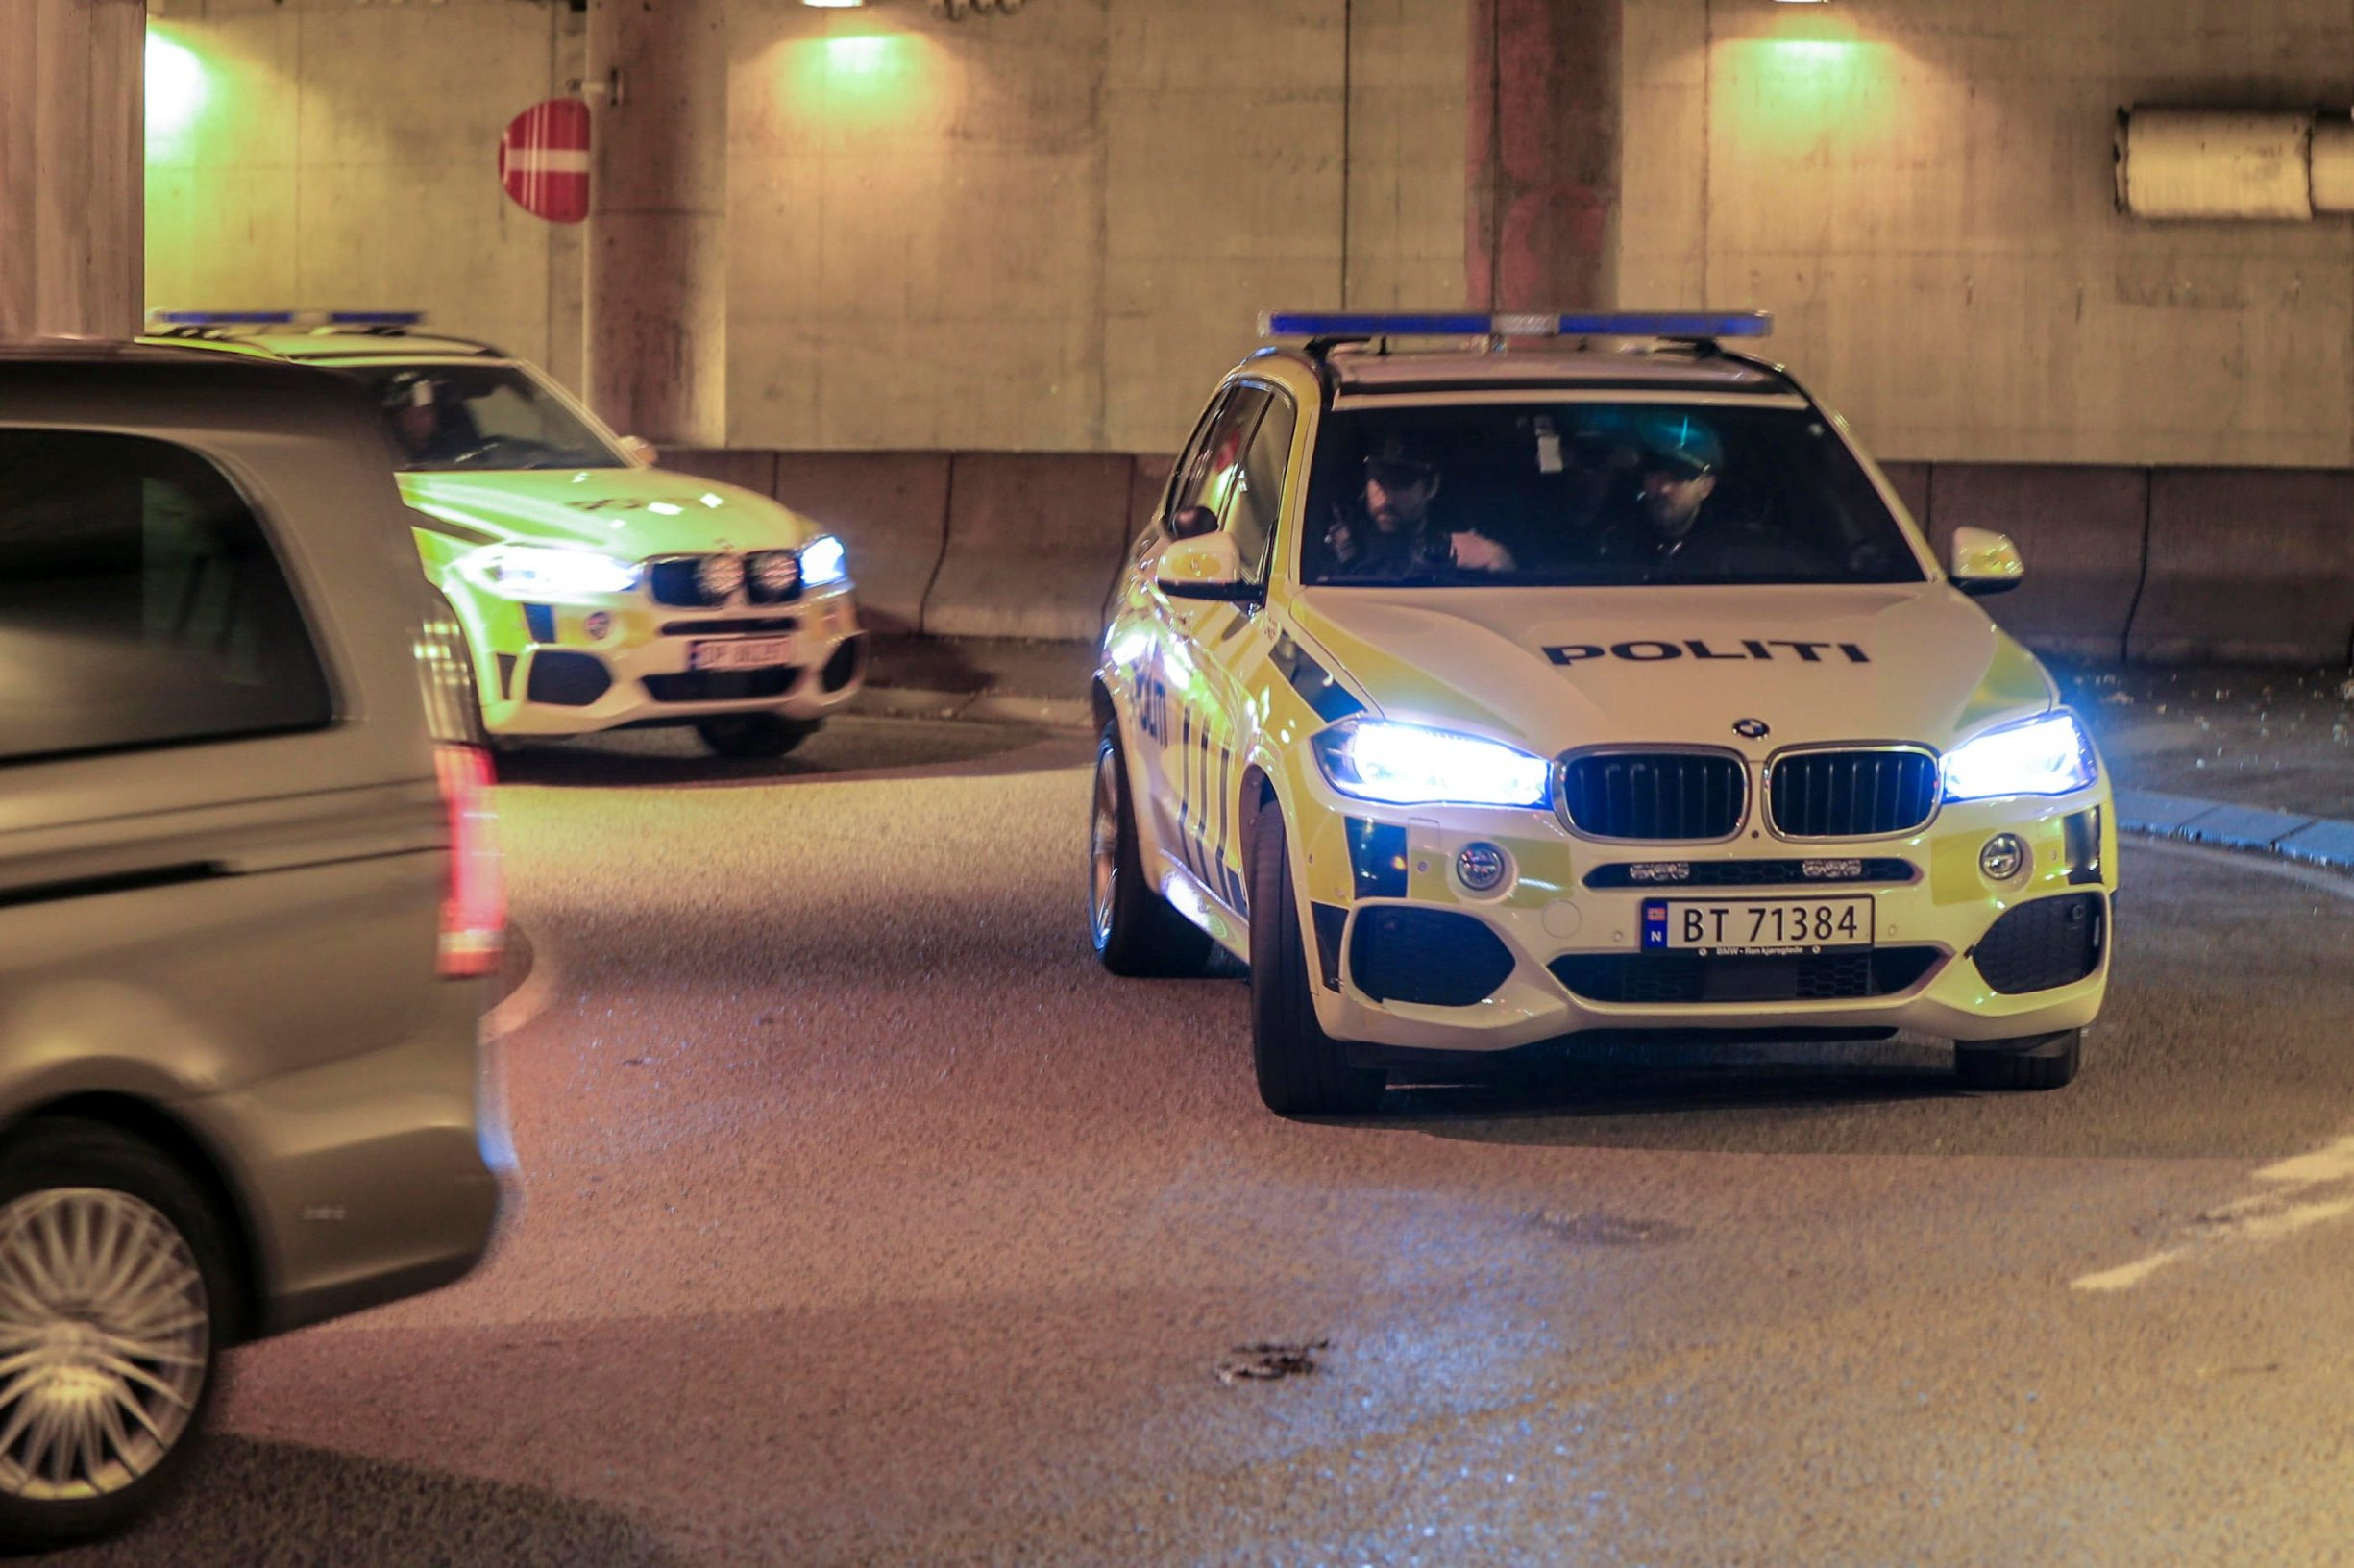 Police cars transporting Philip Manshaus, who is suspected of an armed attack at Al-Noor Islamic Centre Mosque and killing his stepsister arrive at a court in Oslo, Norway, August 12, 2019. NTB Scanpix/Orn E. Borgen via REUTERS ATTENTION EDITORS - THIS IMAGE WAS PROVIDED BY A THIRD PARTY. NORWAY OUT. NO COMMERCIAL OR EDITORIAL SALES IN NORWAY.